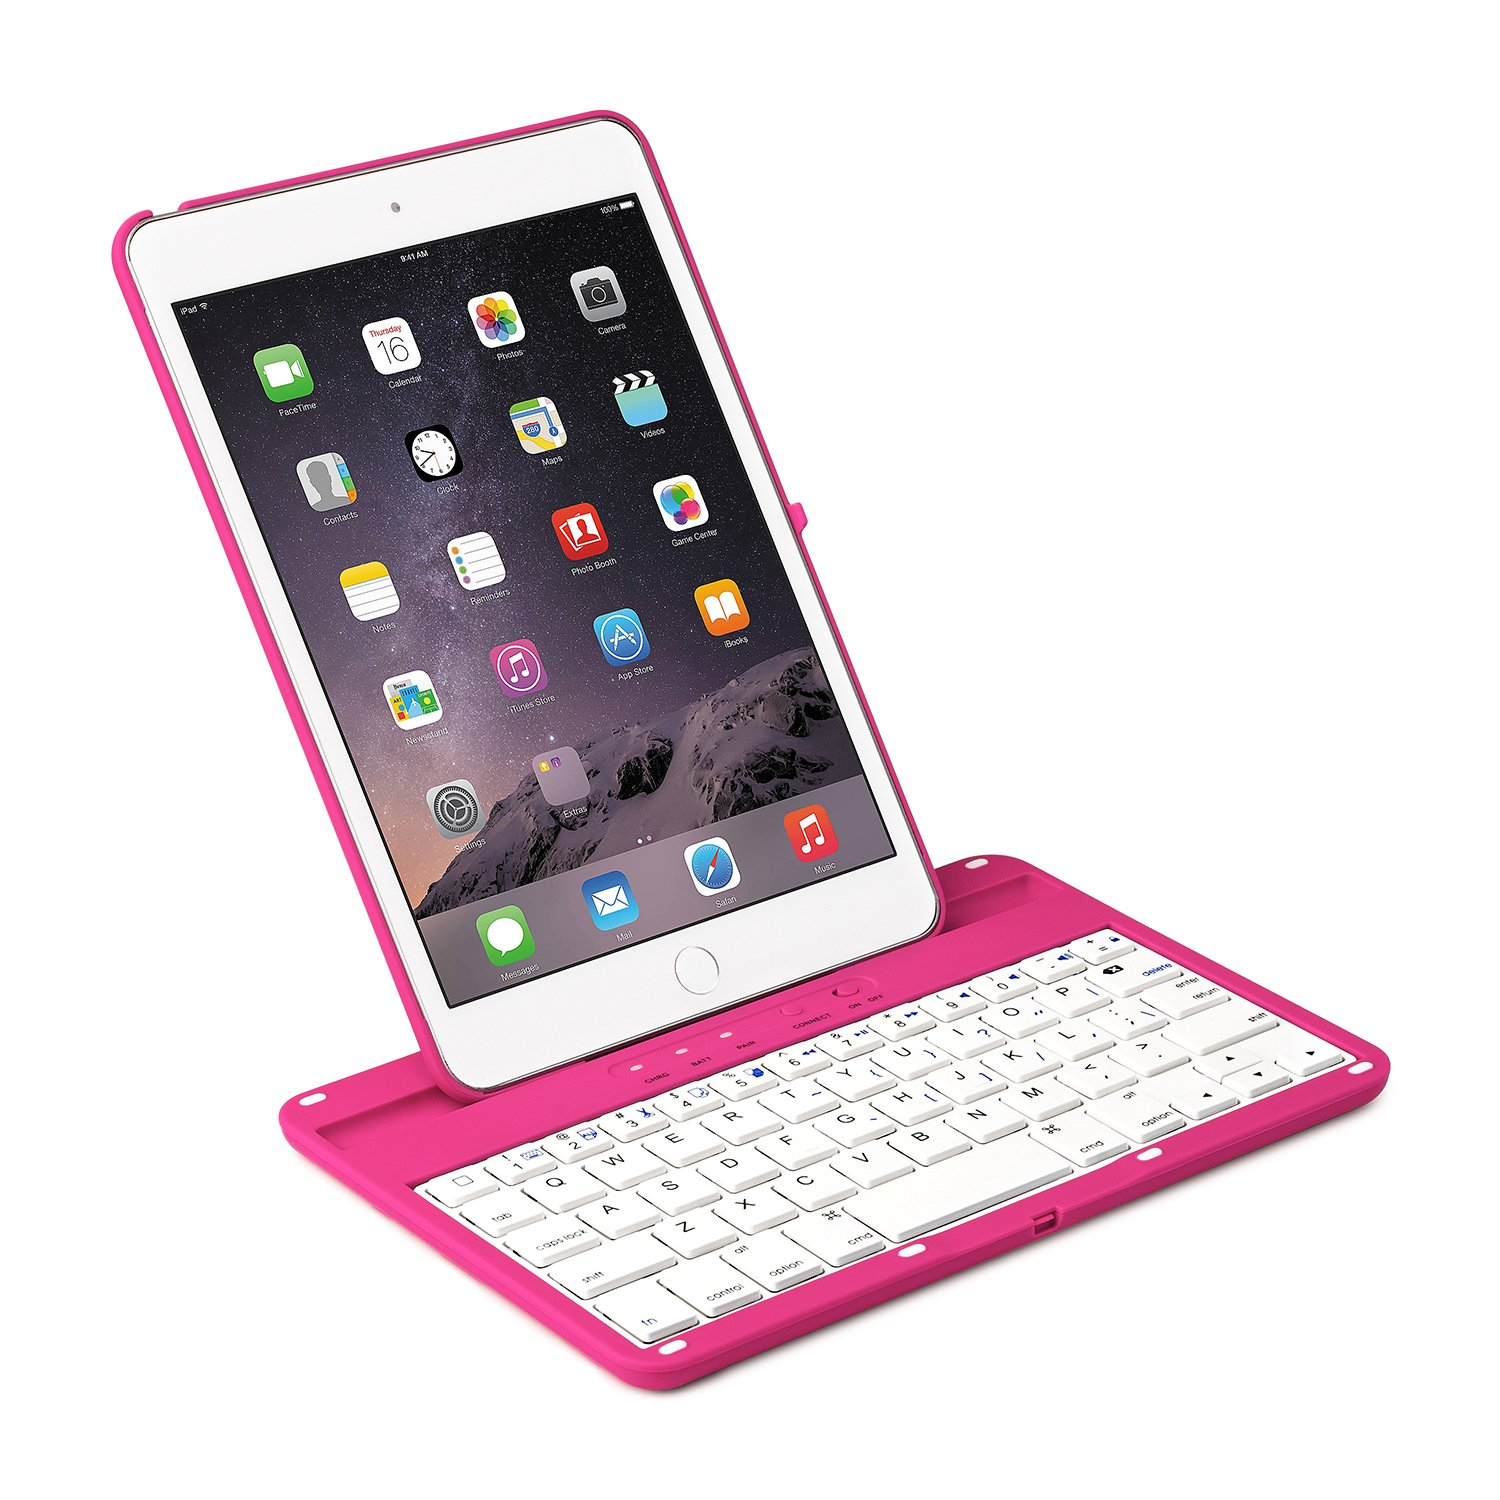 iNNEXT Aluminum 360 Swivel Rotating Stand Case Cover Built-in Bluetooth Keyboard for ipad Mini 1 2 3 with Retina Display (Hot Pink) by iNNEXT (Image #3)